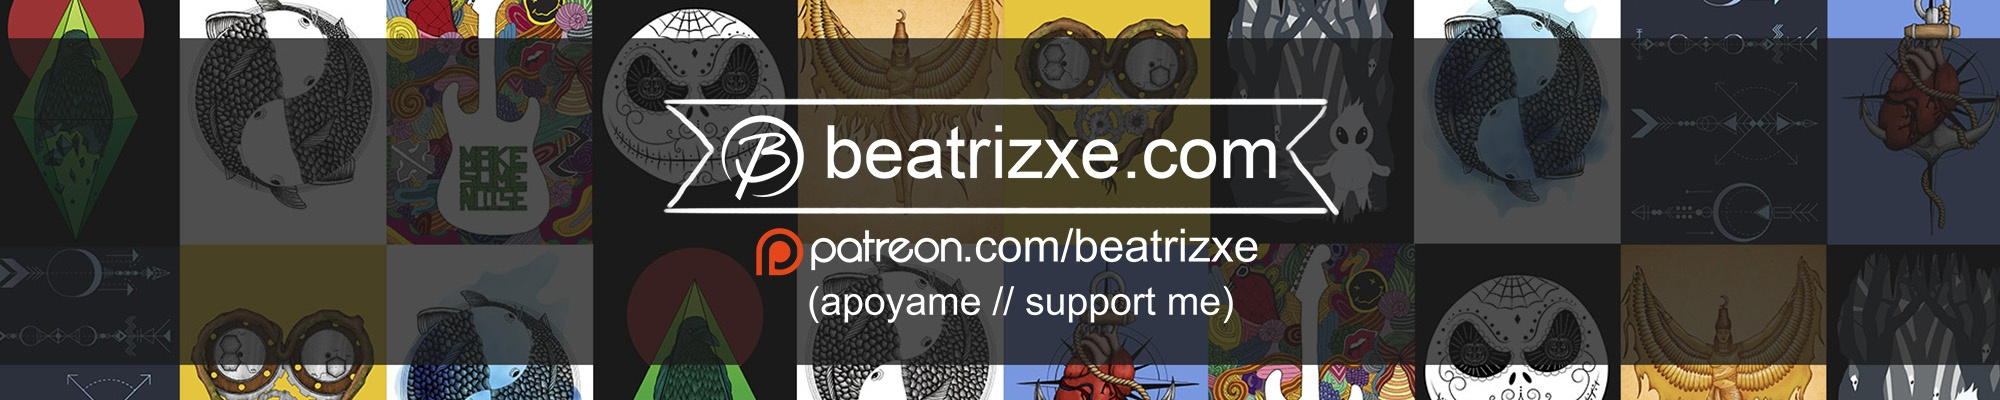 beatrizxe Cover